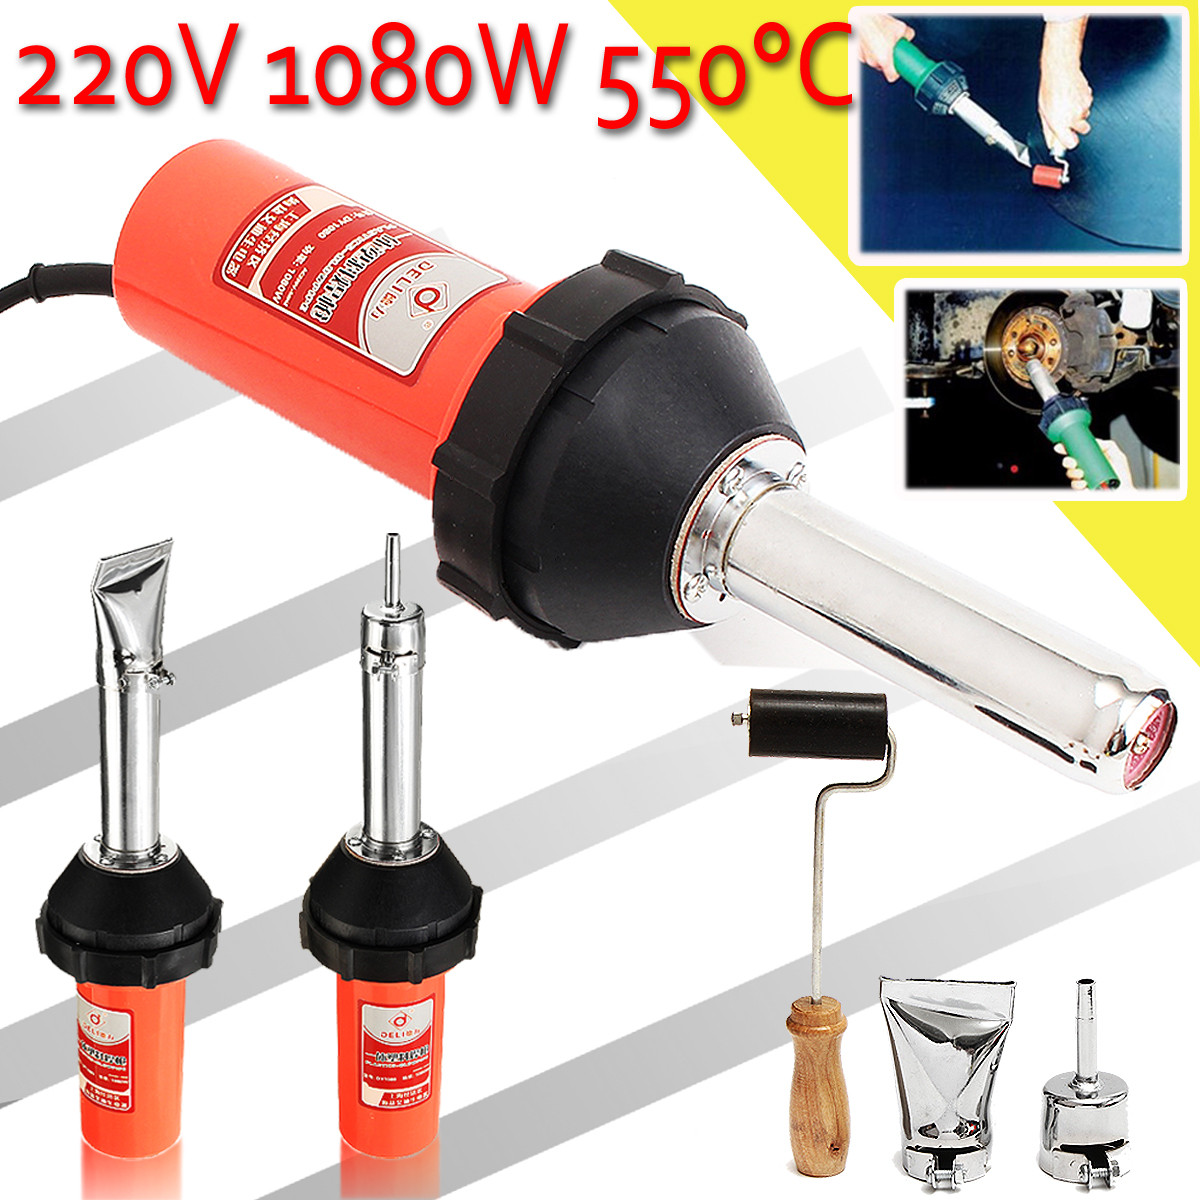 NEW 220V 1080W 50Hz Plastic Welding Hot Air Torch Welding Pistol Tool w Nozzle and Pressure